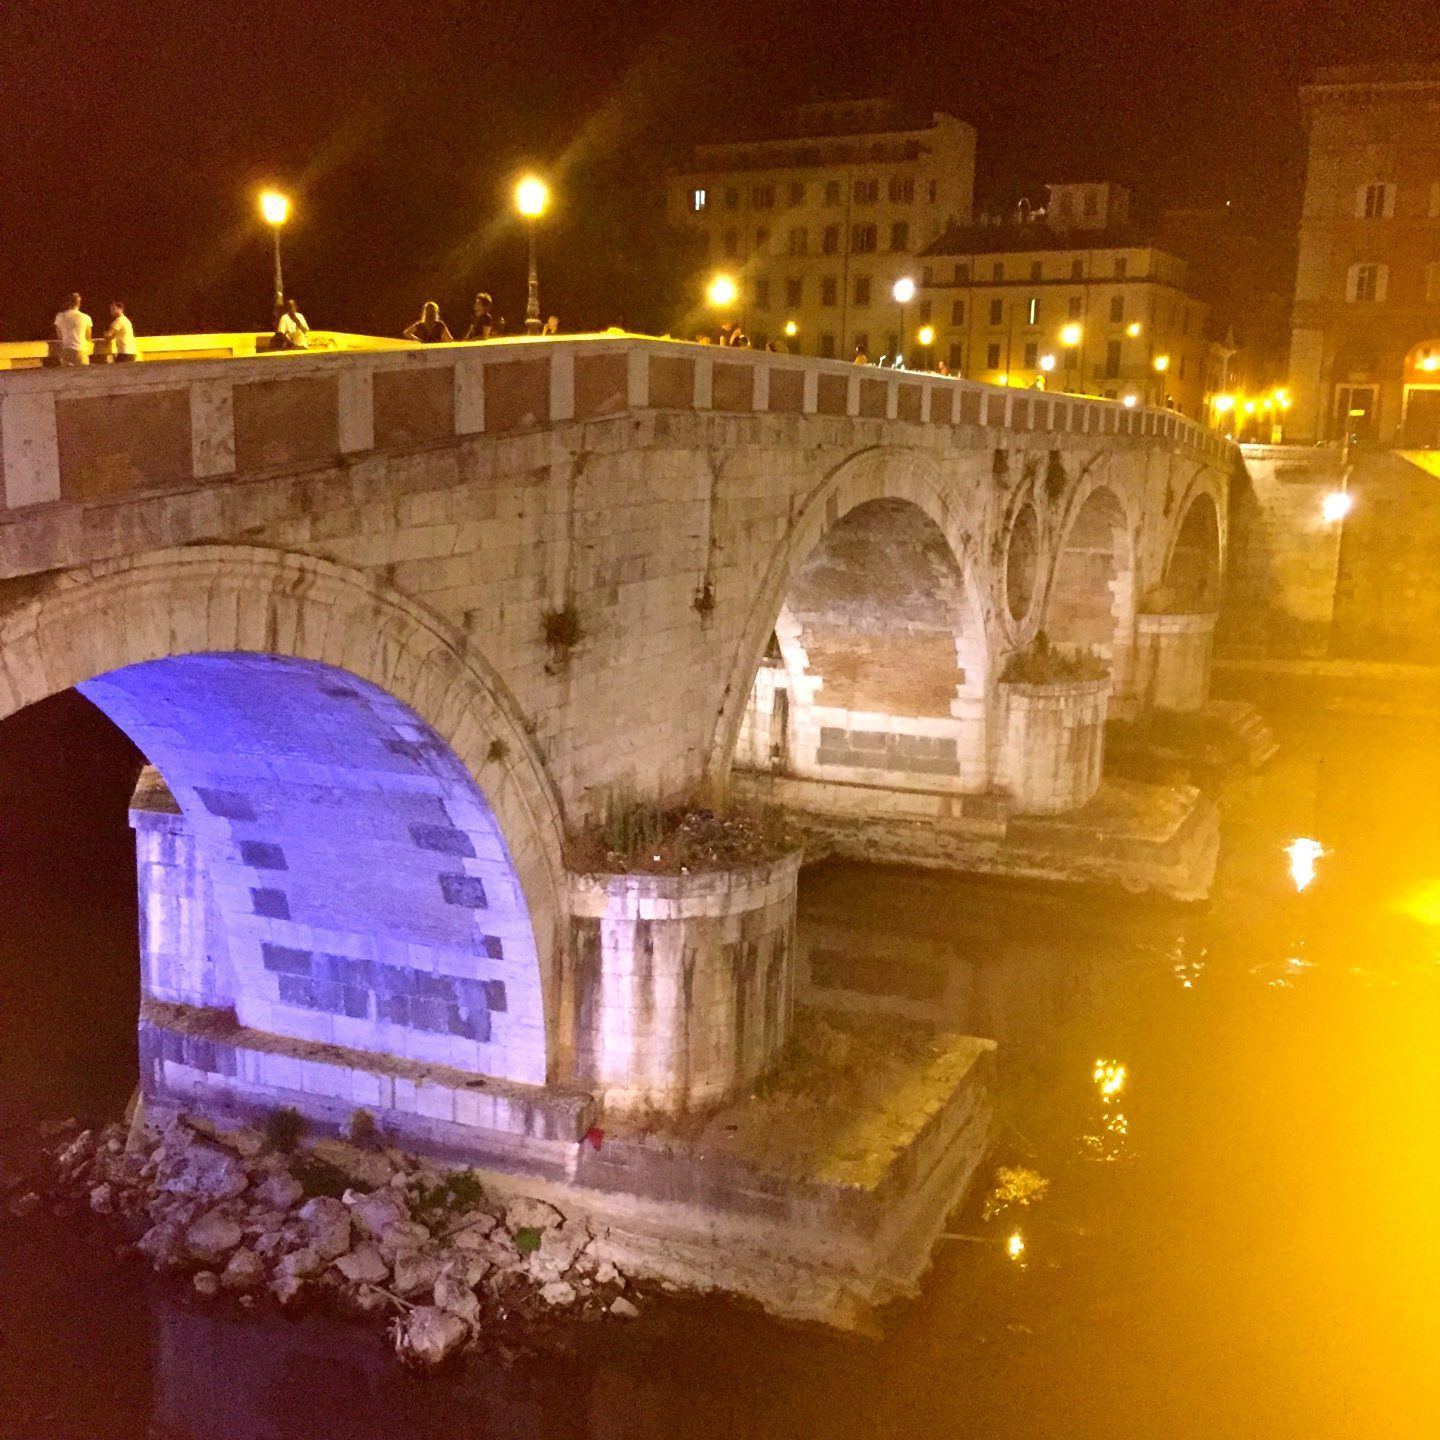 Crossing a bridge lit up at night in Rome to get to Trastevere.